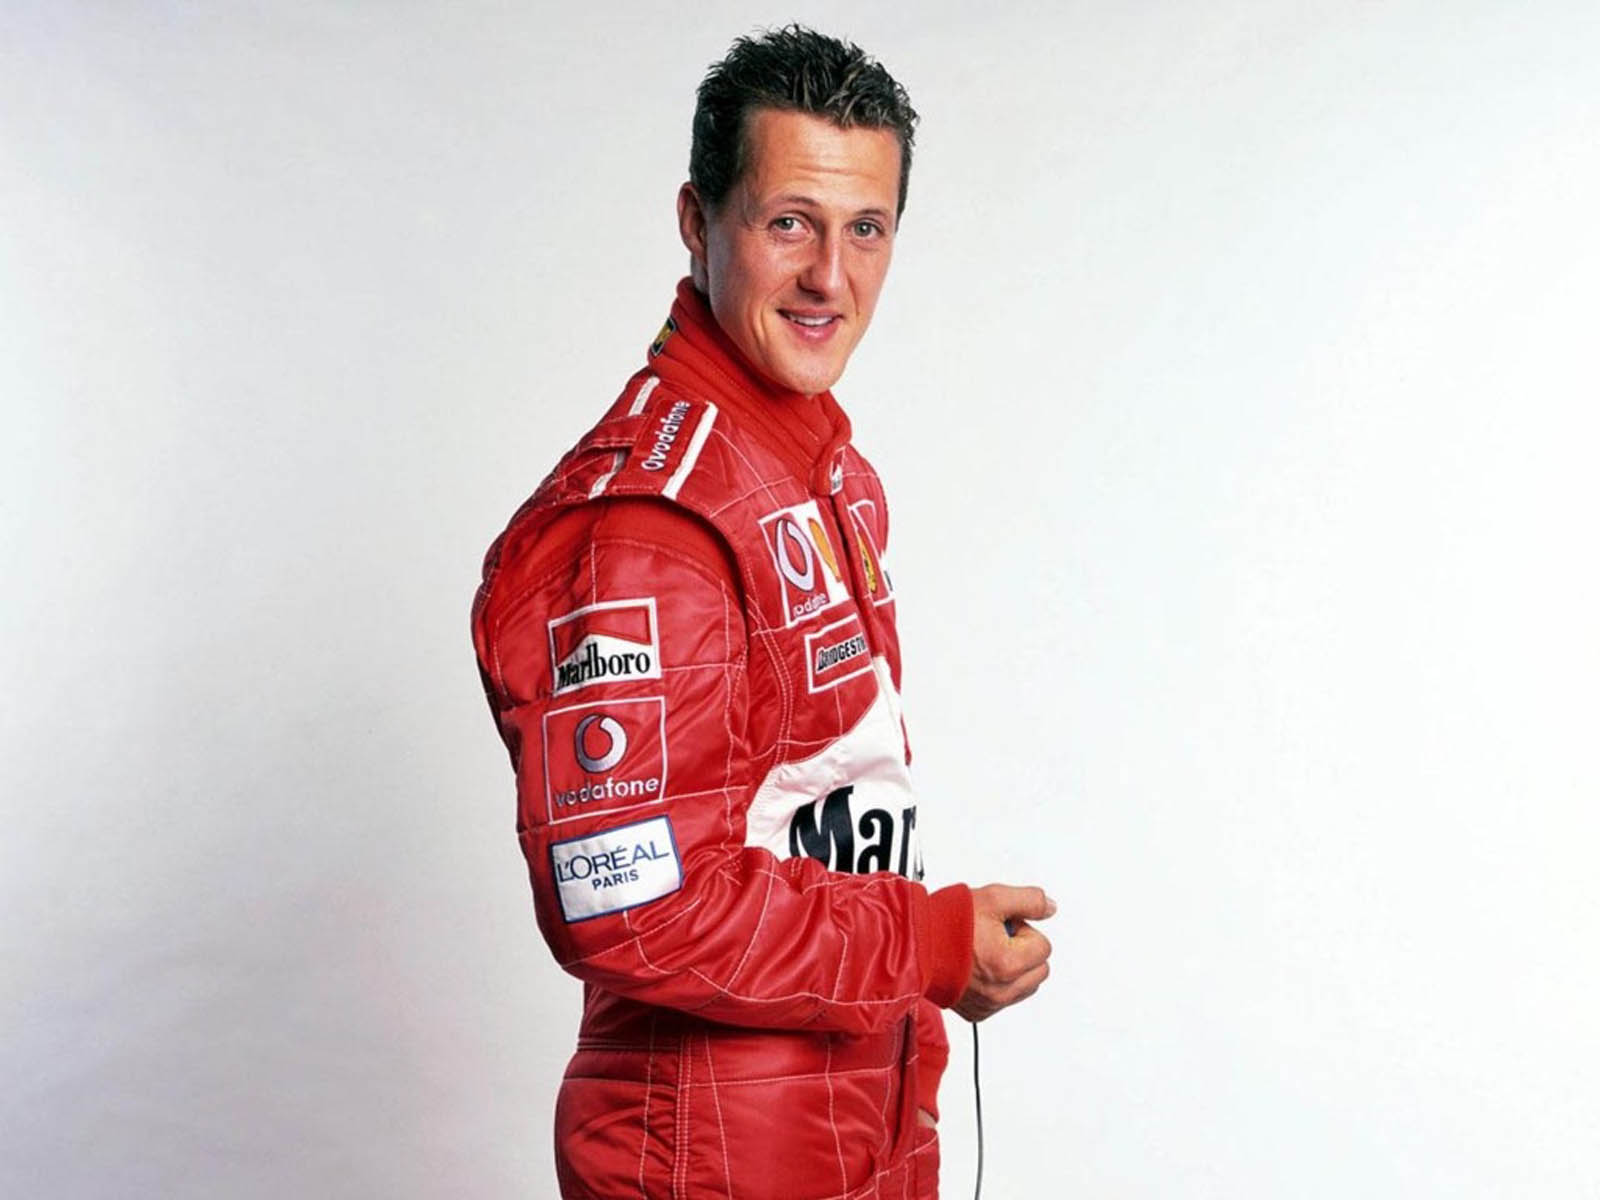 michael schumacher - photo #50